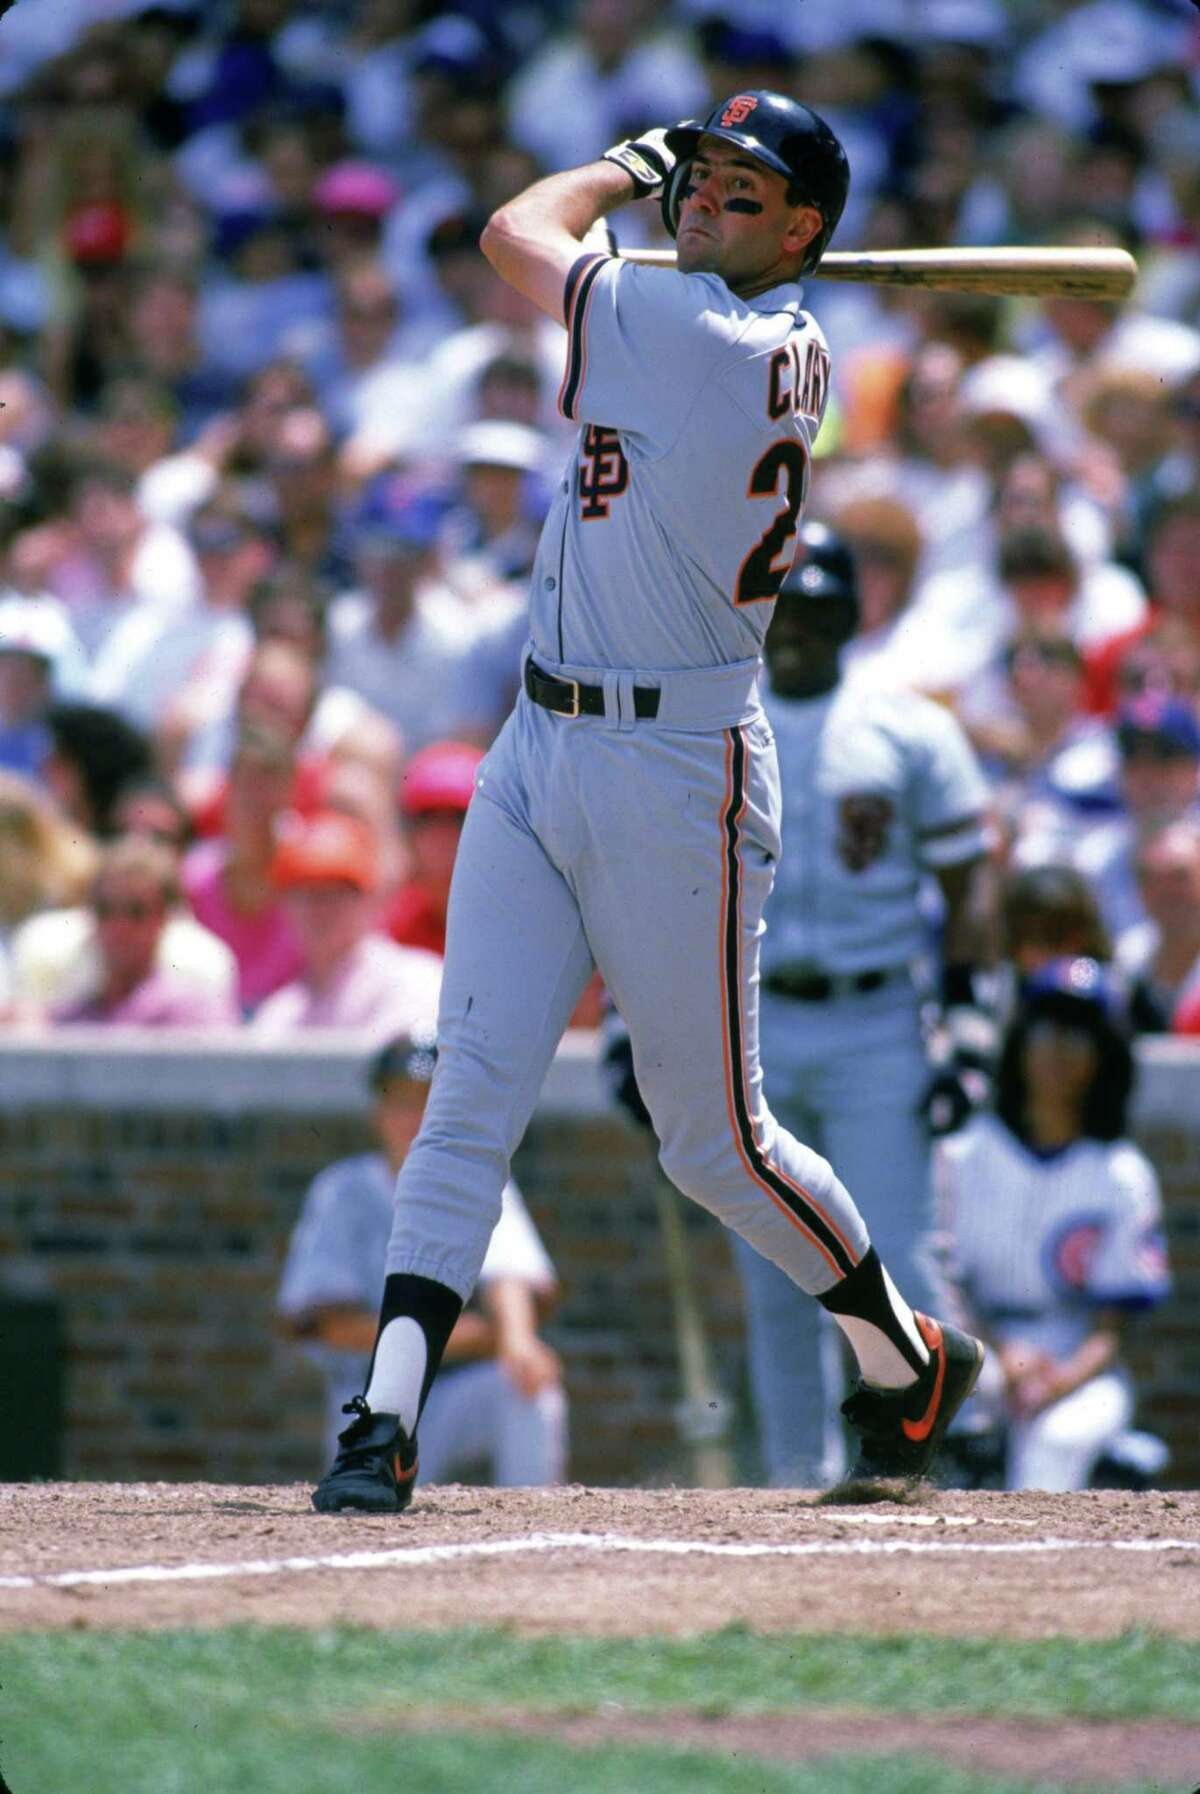 Will Clark of the Giants bats during a game at Wrigley Field in Chicago.